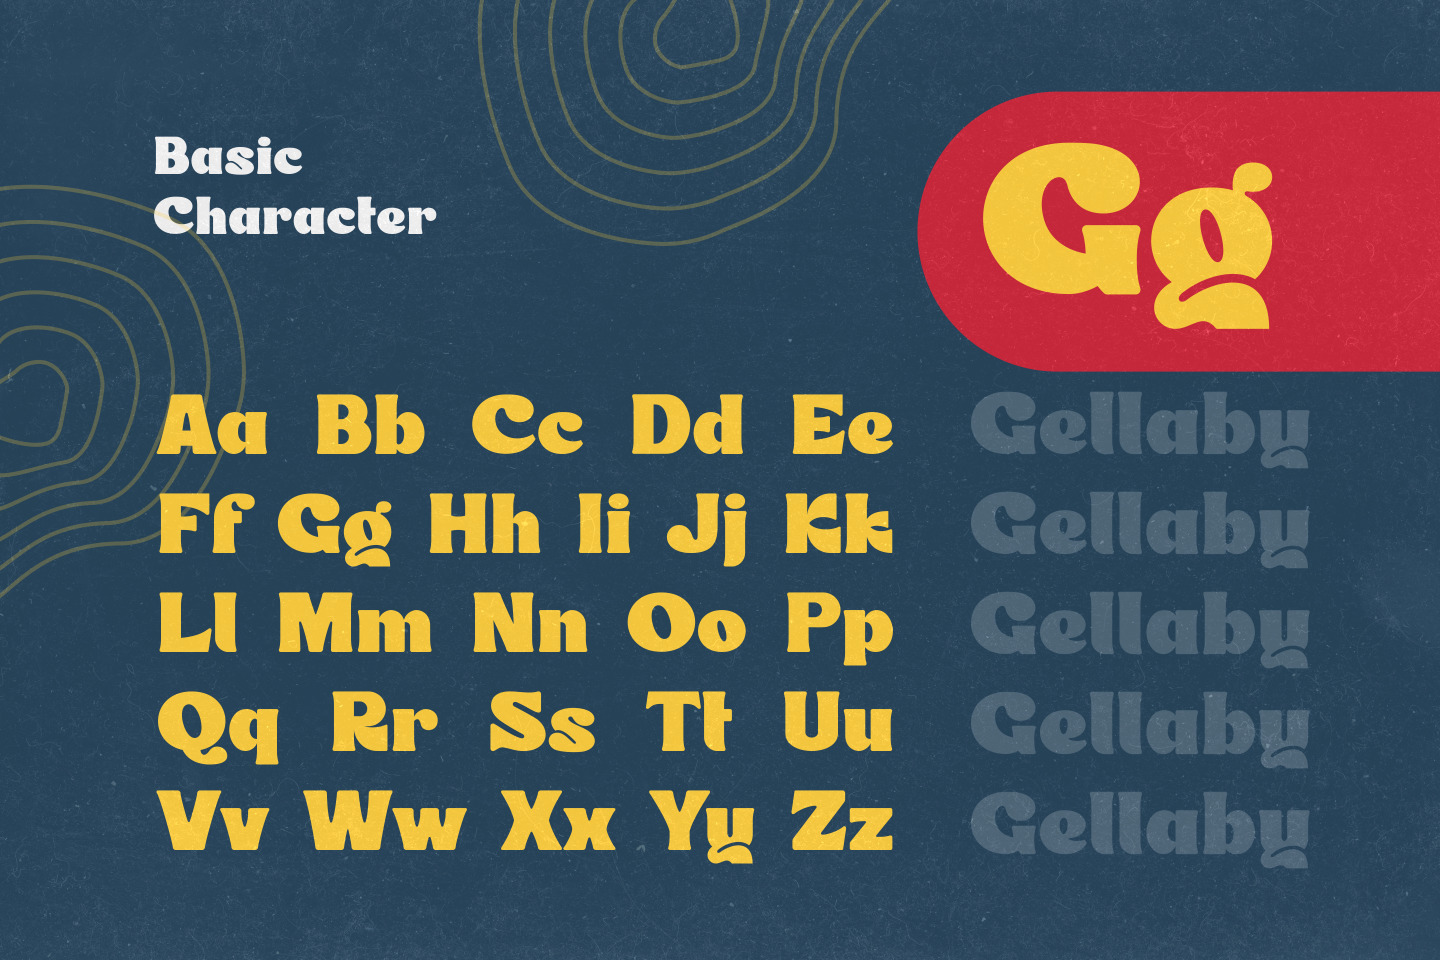 Gellaby - Chubby Display Font